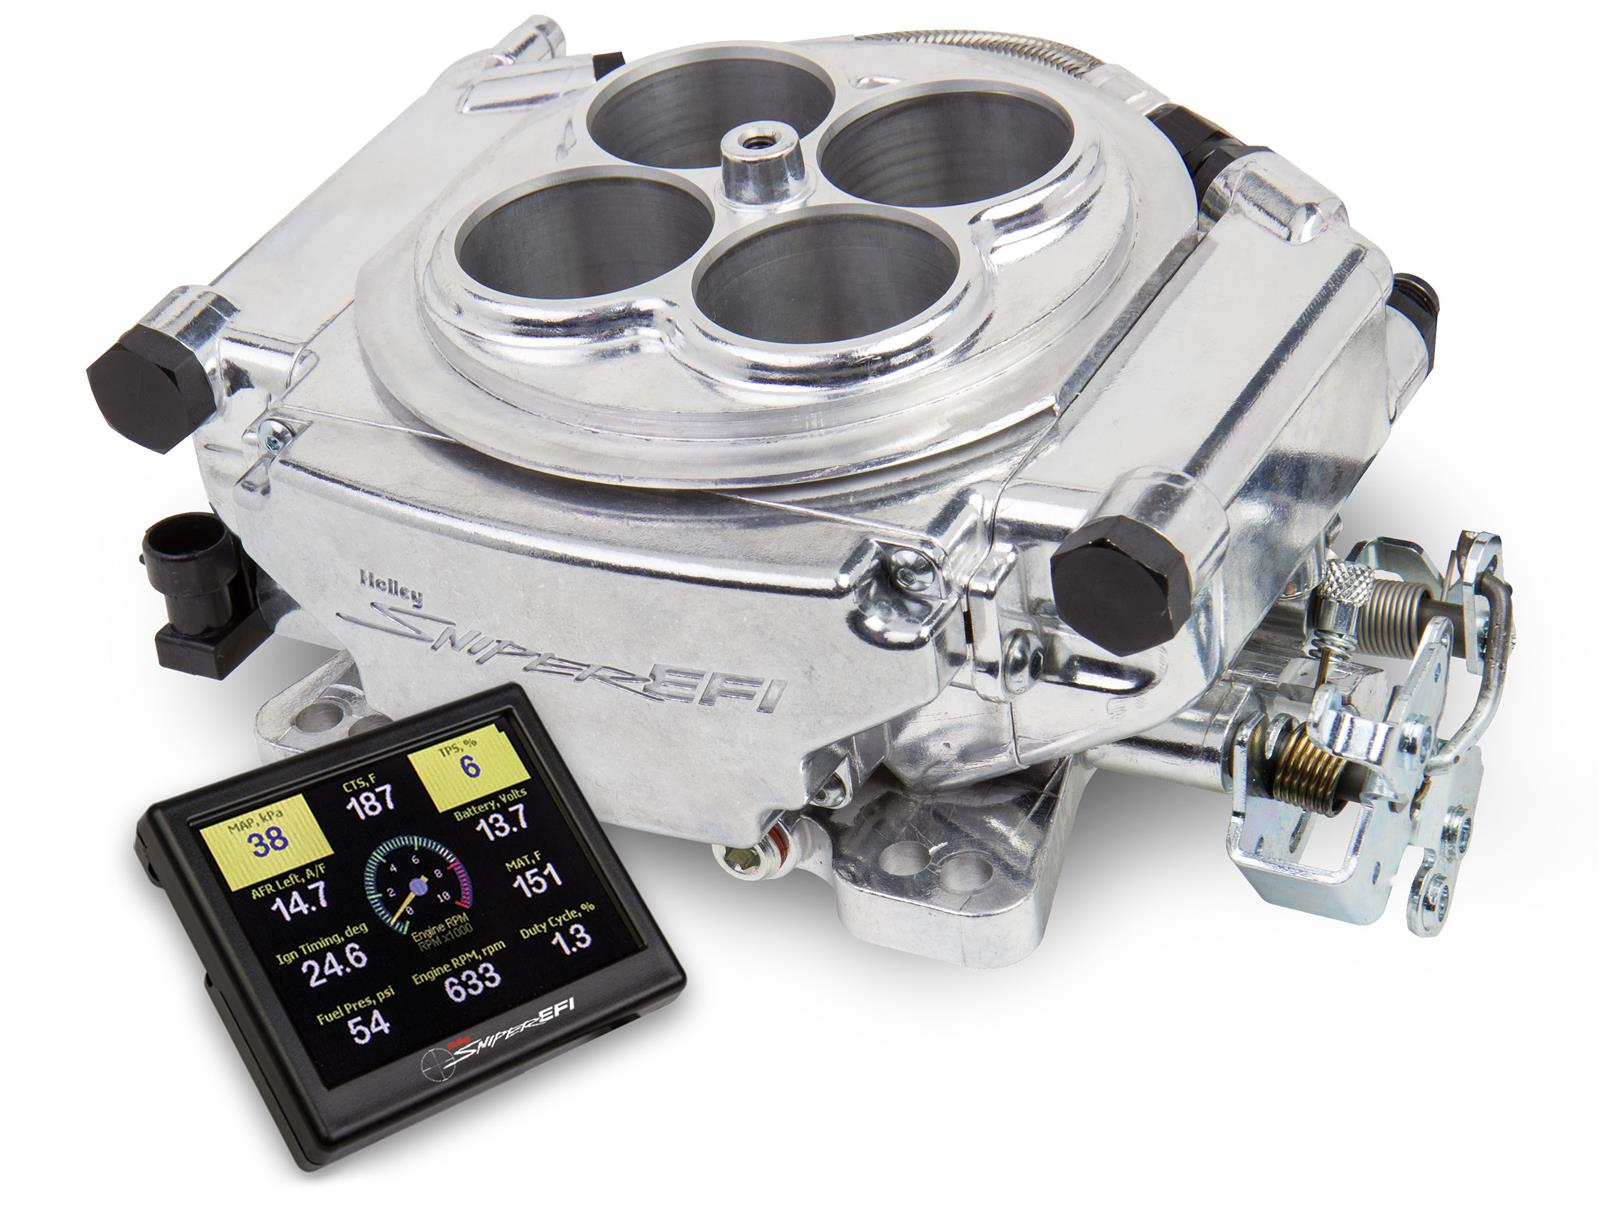 Holley Sniper EFI Self-Tuning Fuel Injection Systems 550 ...